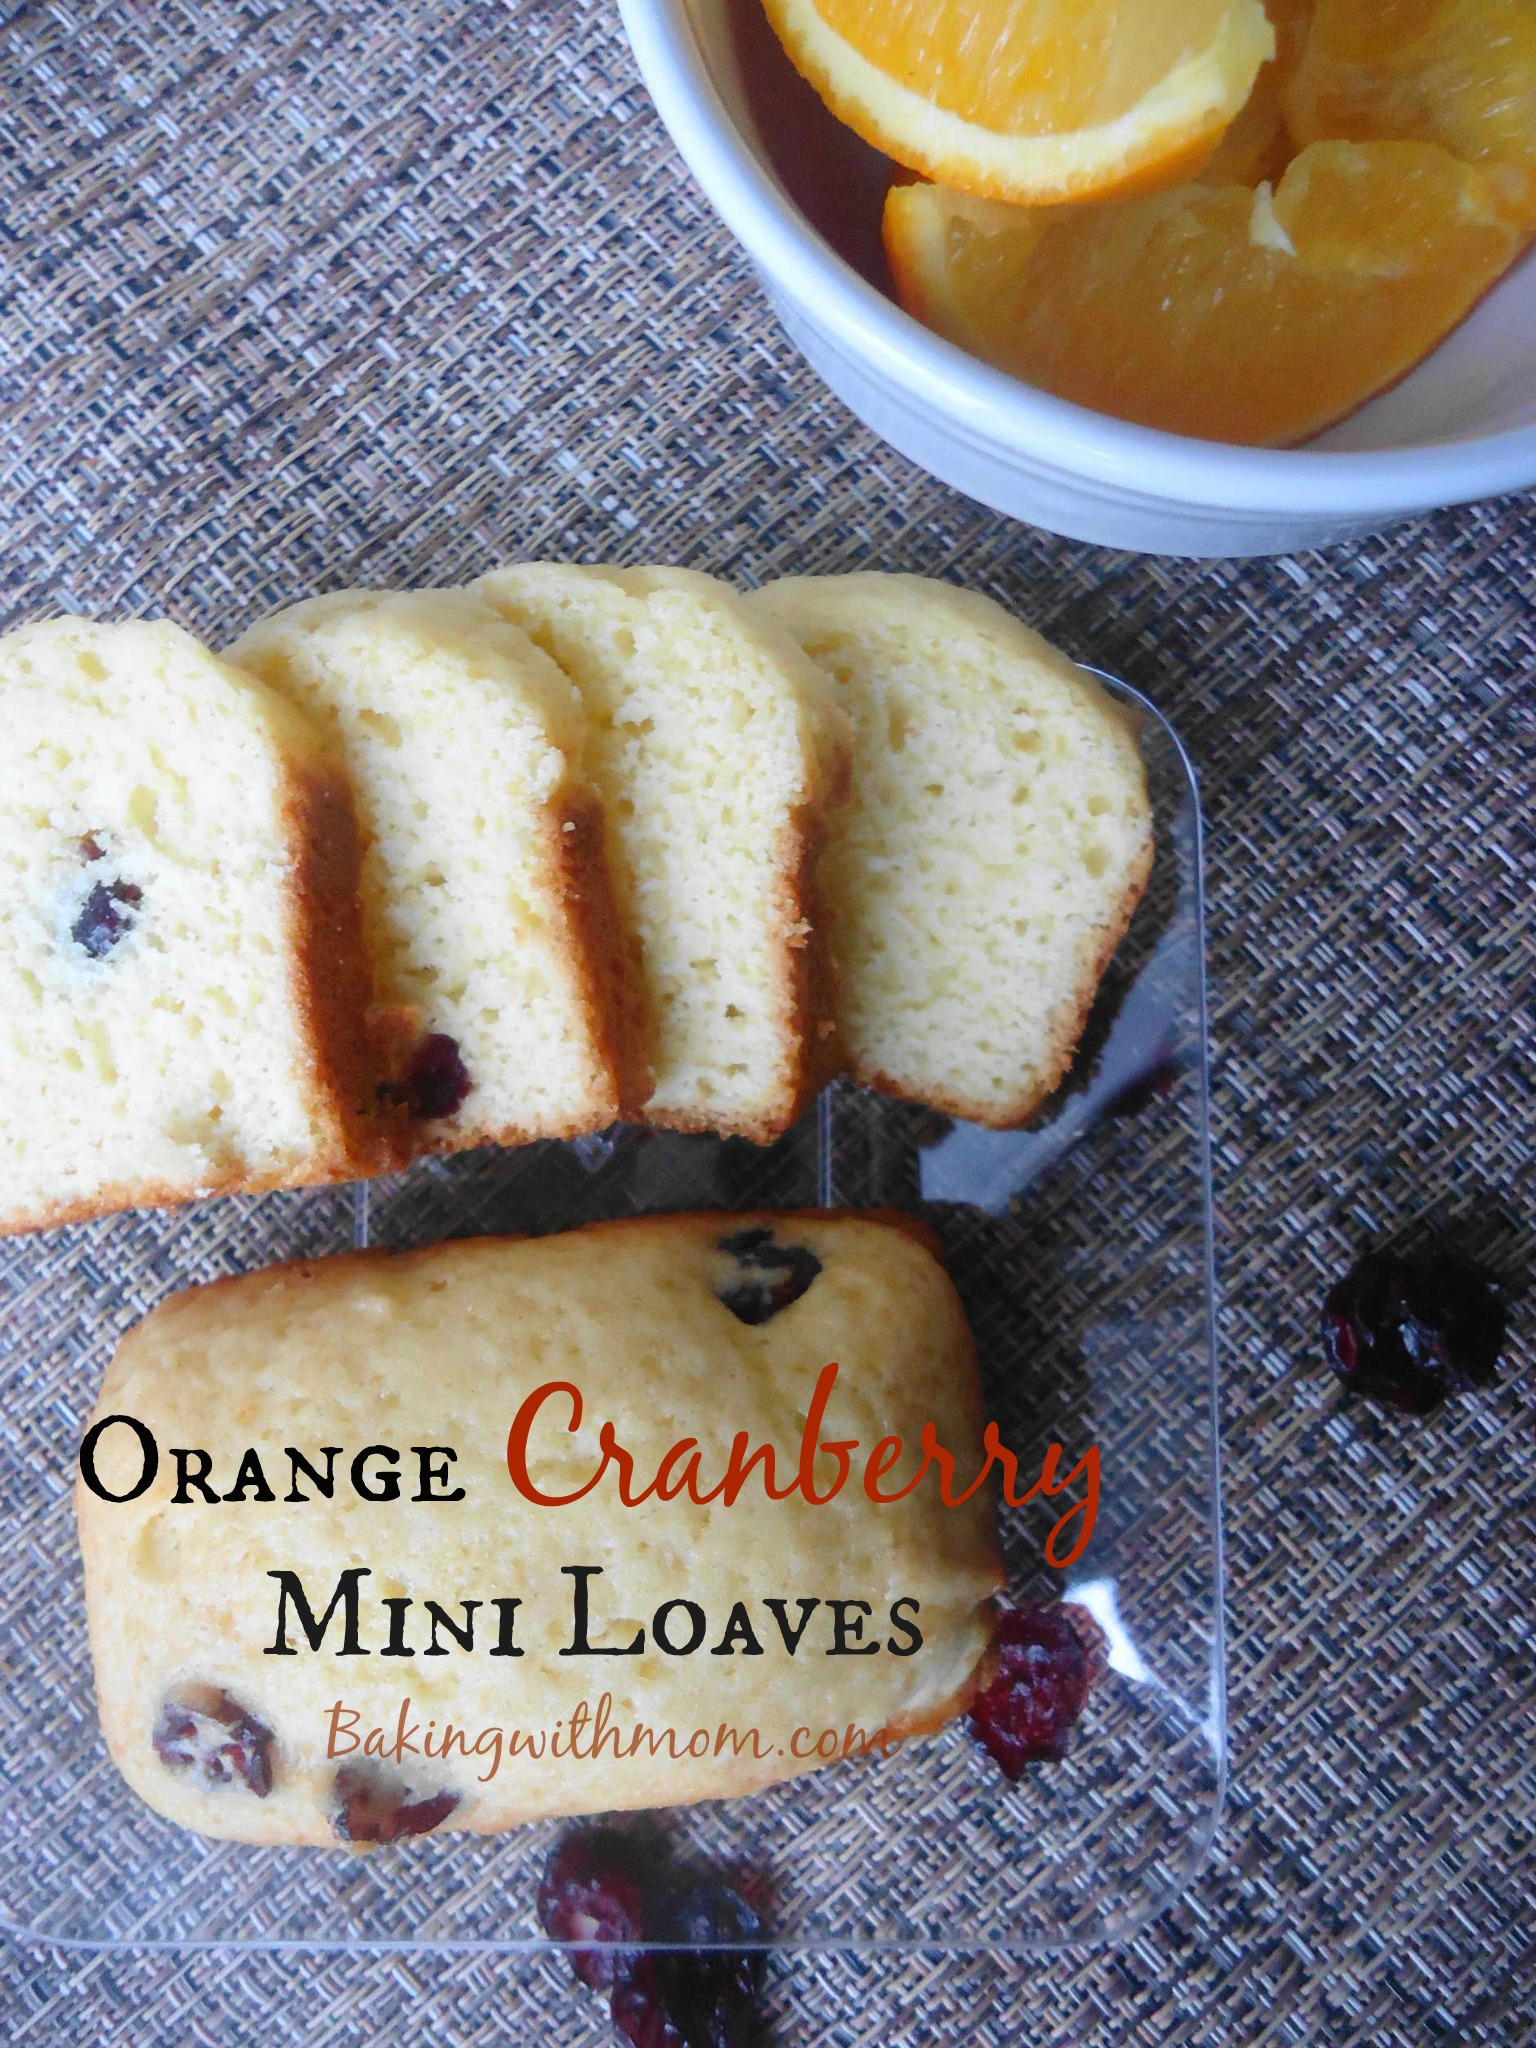 Orange Cranberry Mini Loaves for snack, lunch or anytime. Perfect size and perfect orange and cranberry/craisin flavor